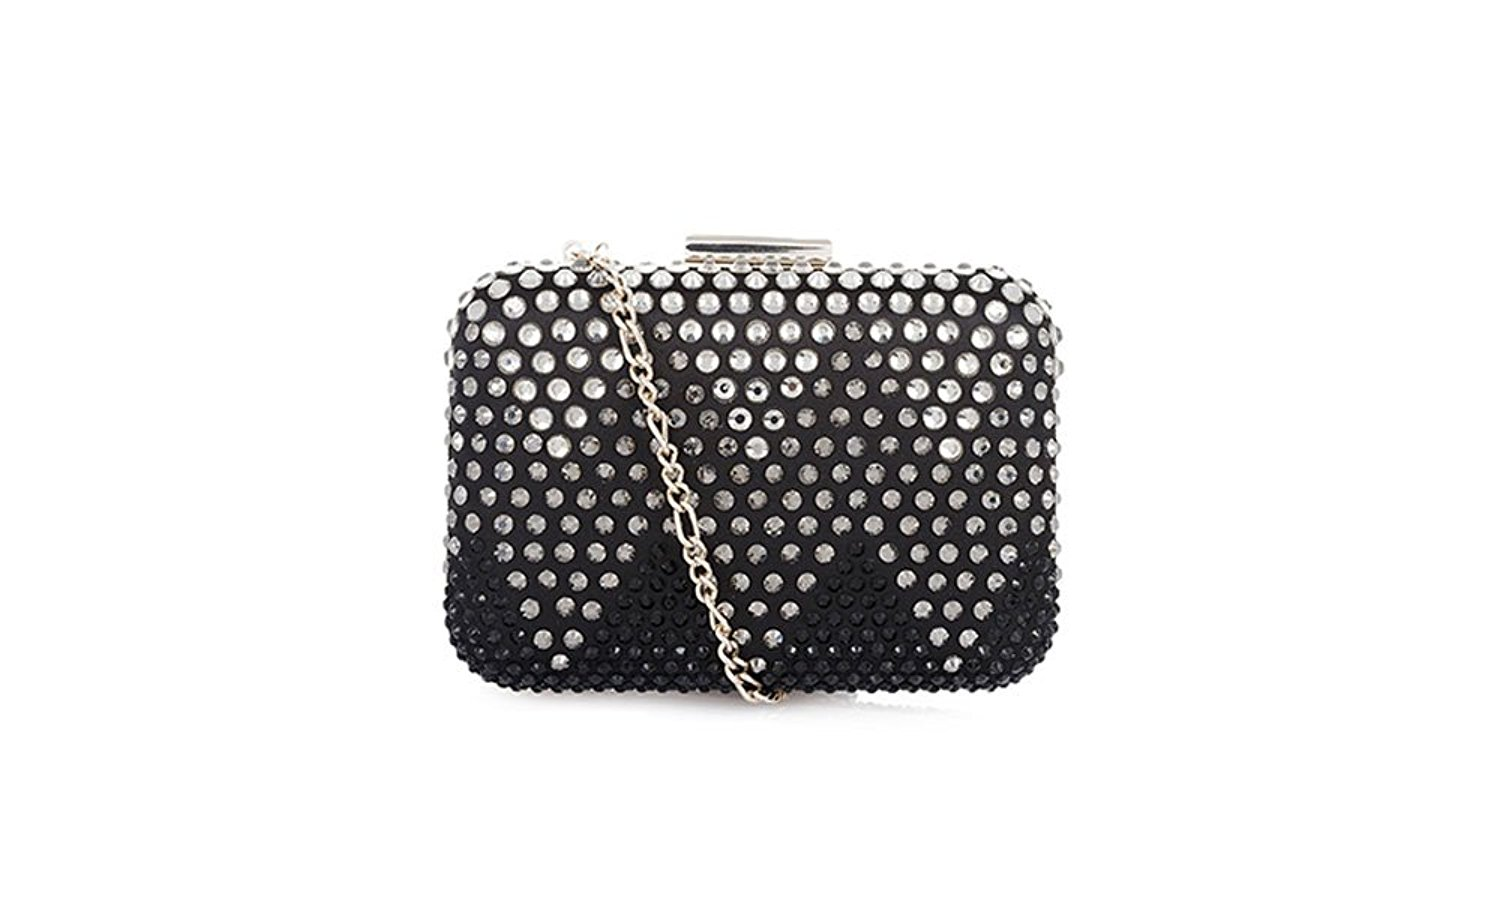 d962a00ab3db5 PINKO BAG MISS BELLE CLUTCH CON STRASS E CATINELLA - Weddiness ...